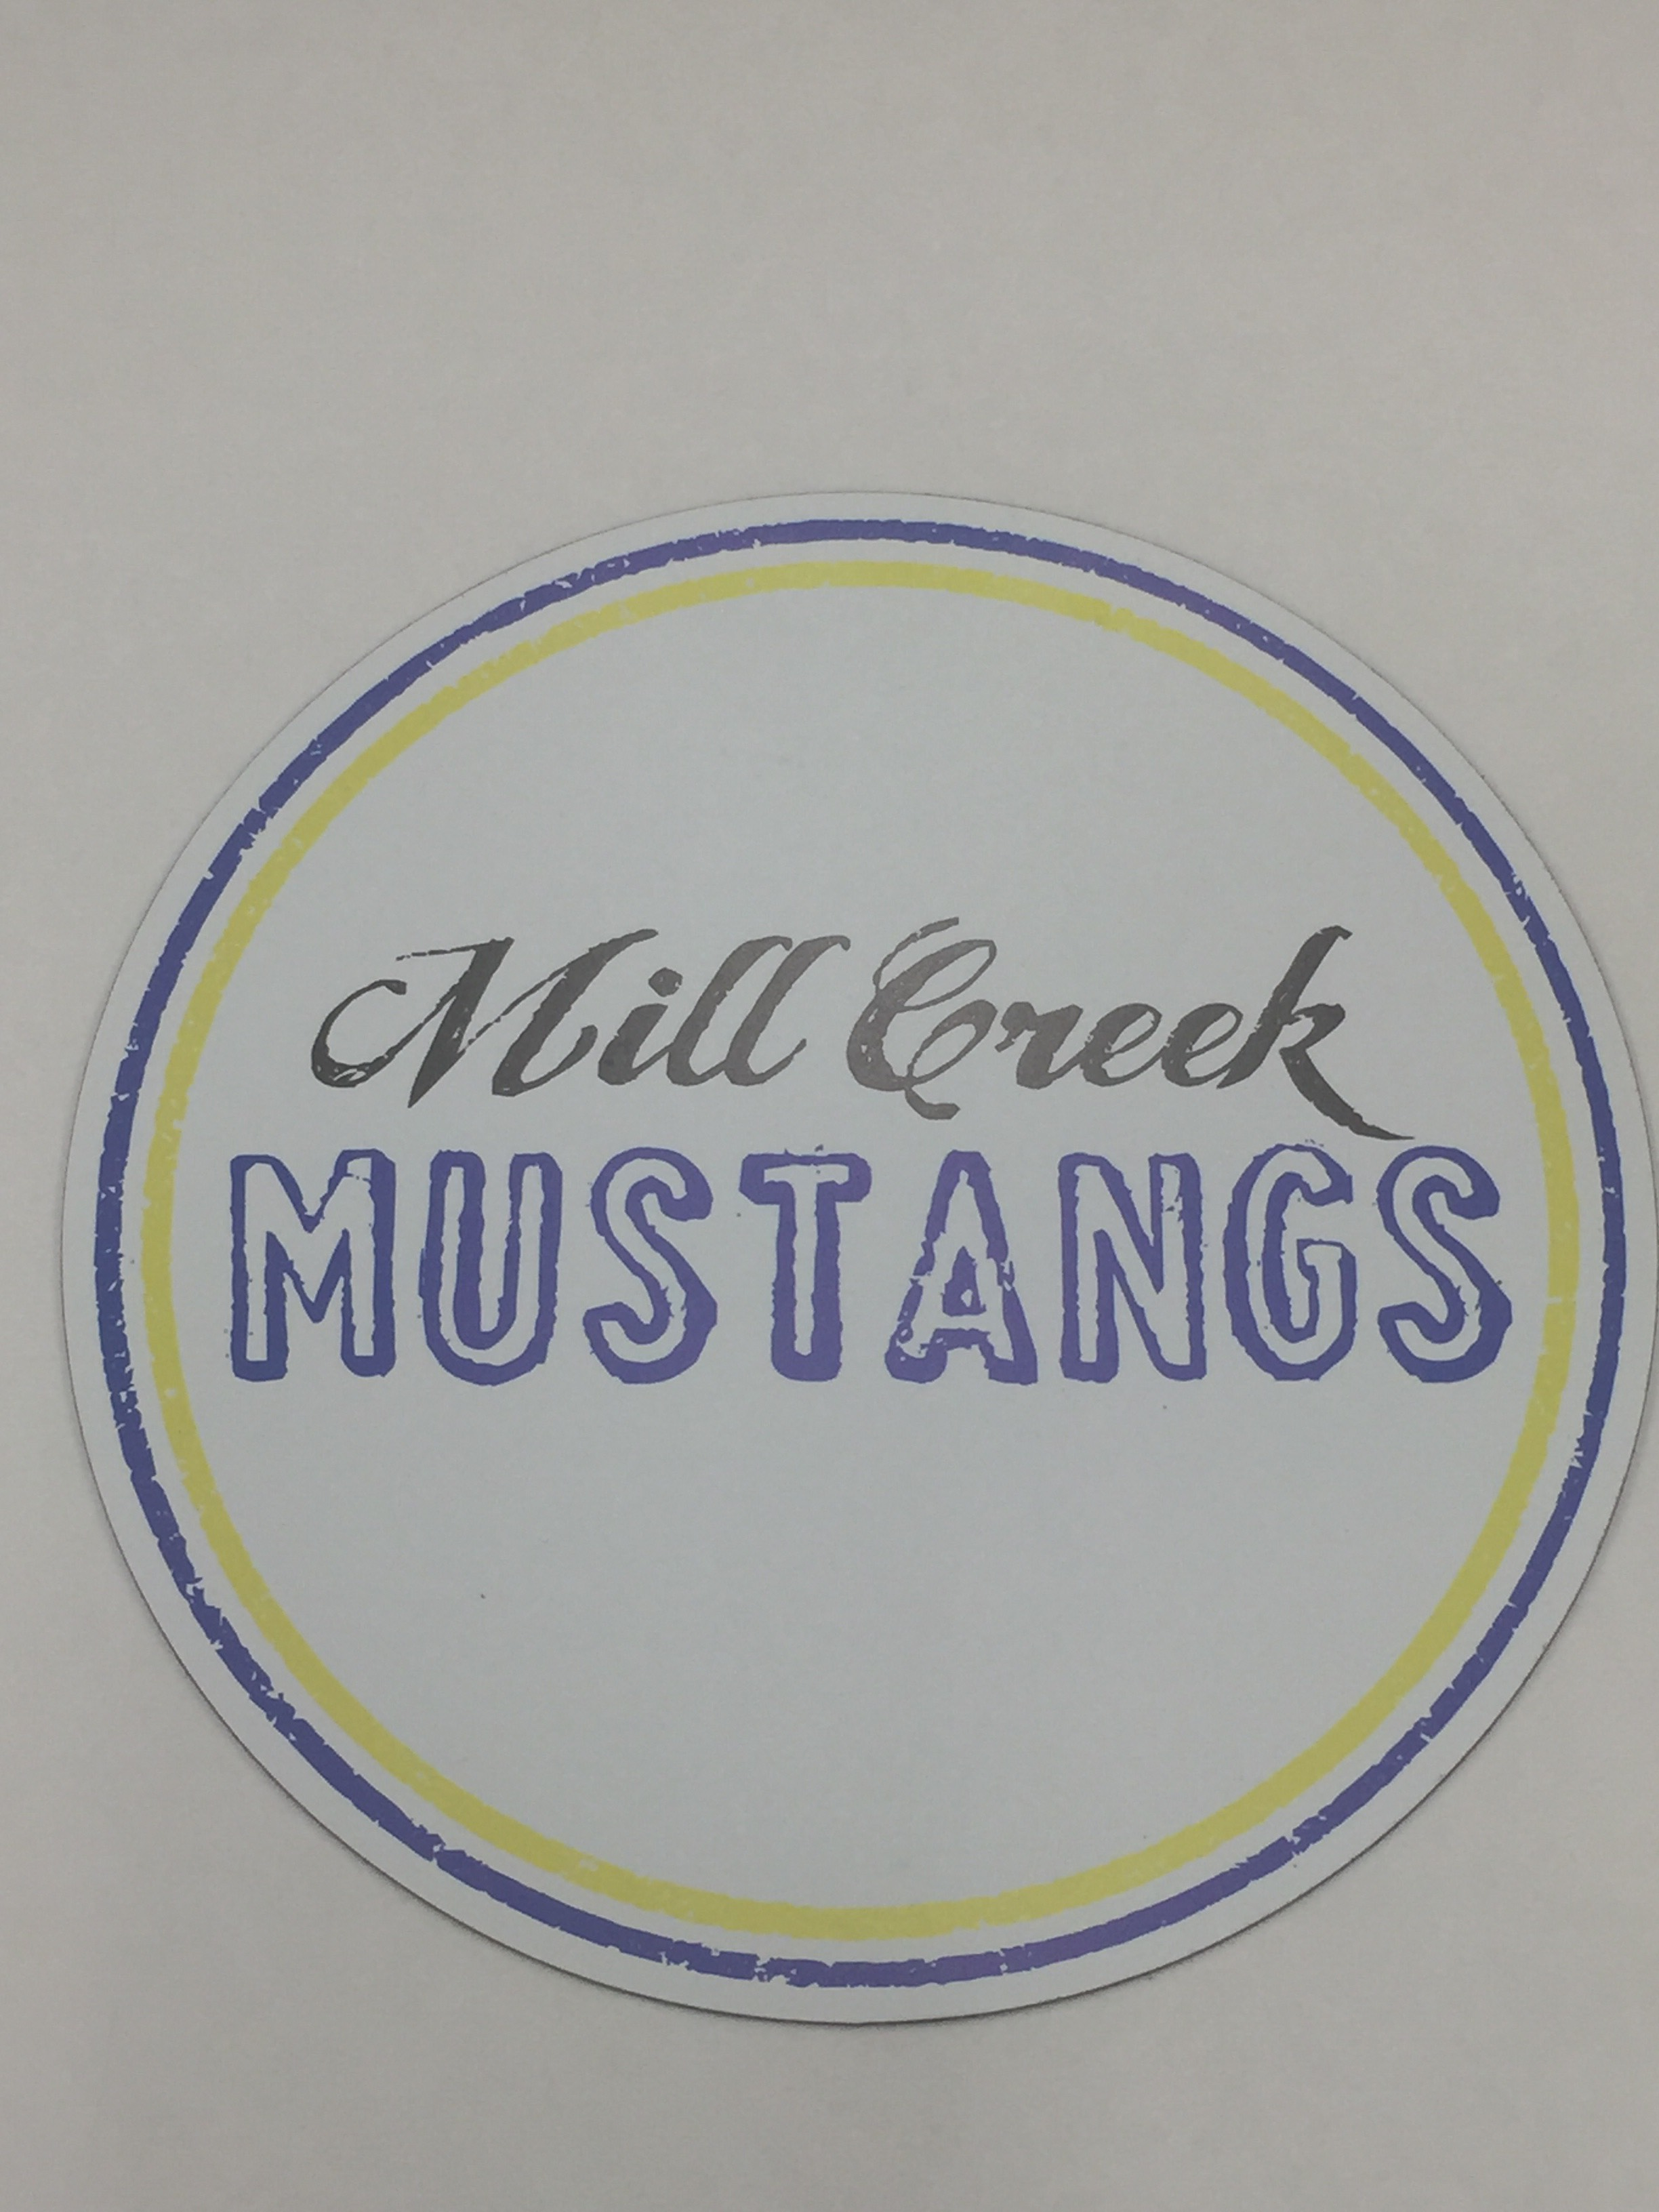 Mill Creek Mustangs Sticker